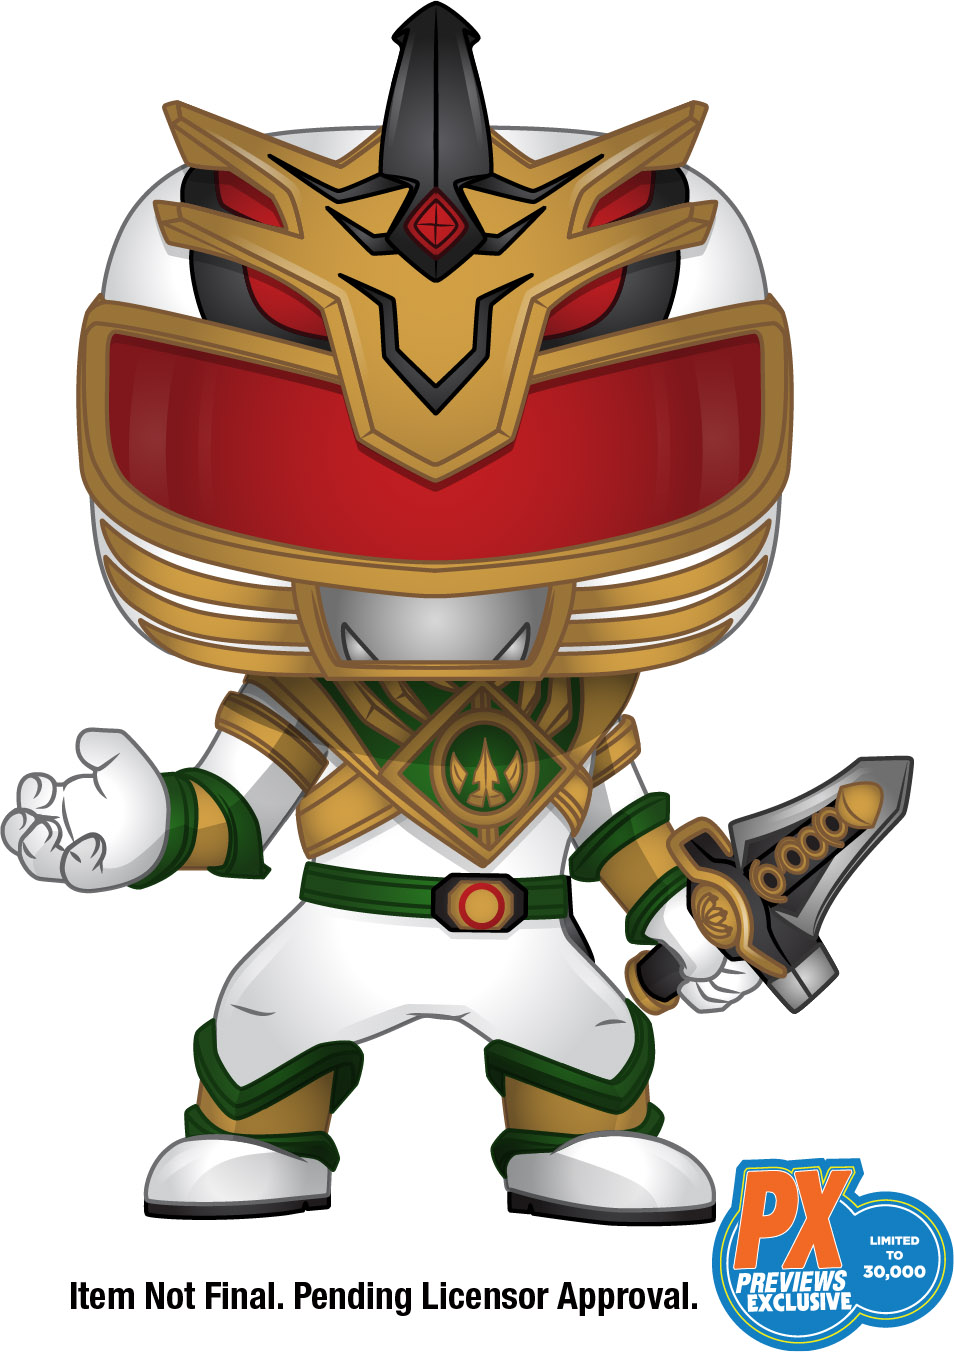 PREVIEWS, exclusive, Funko, POP!, Diamond, Power Rangers, Shattered Grid, Lord Drakkon, BOOM! Studios